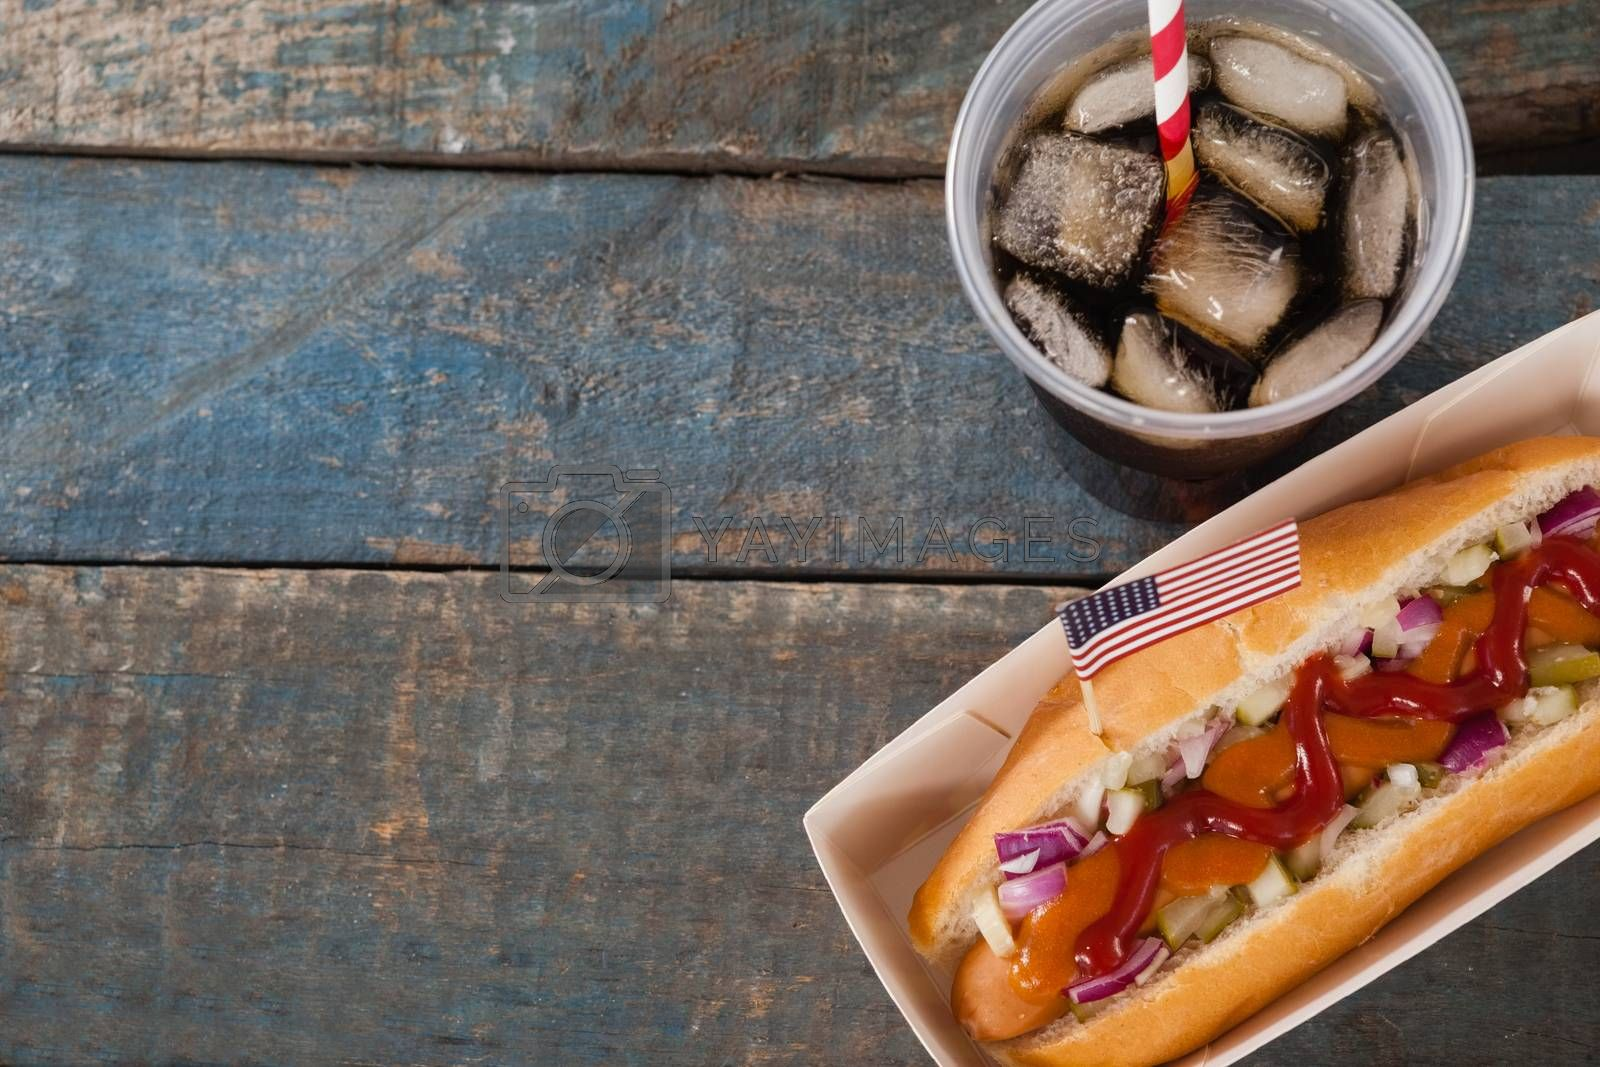 Hot dog and cold drink on with 4th july theme on wooden table